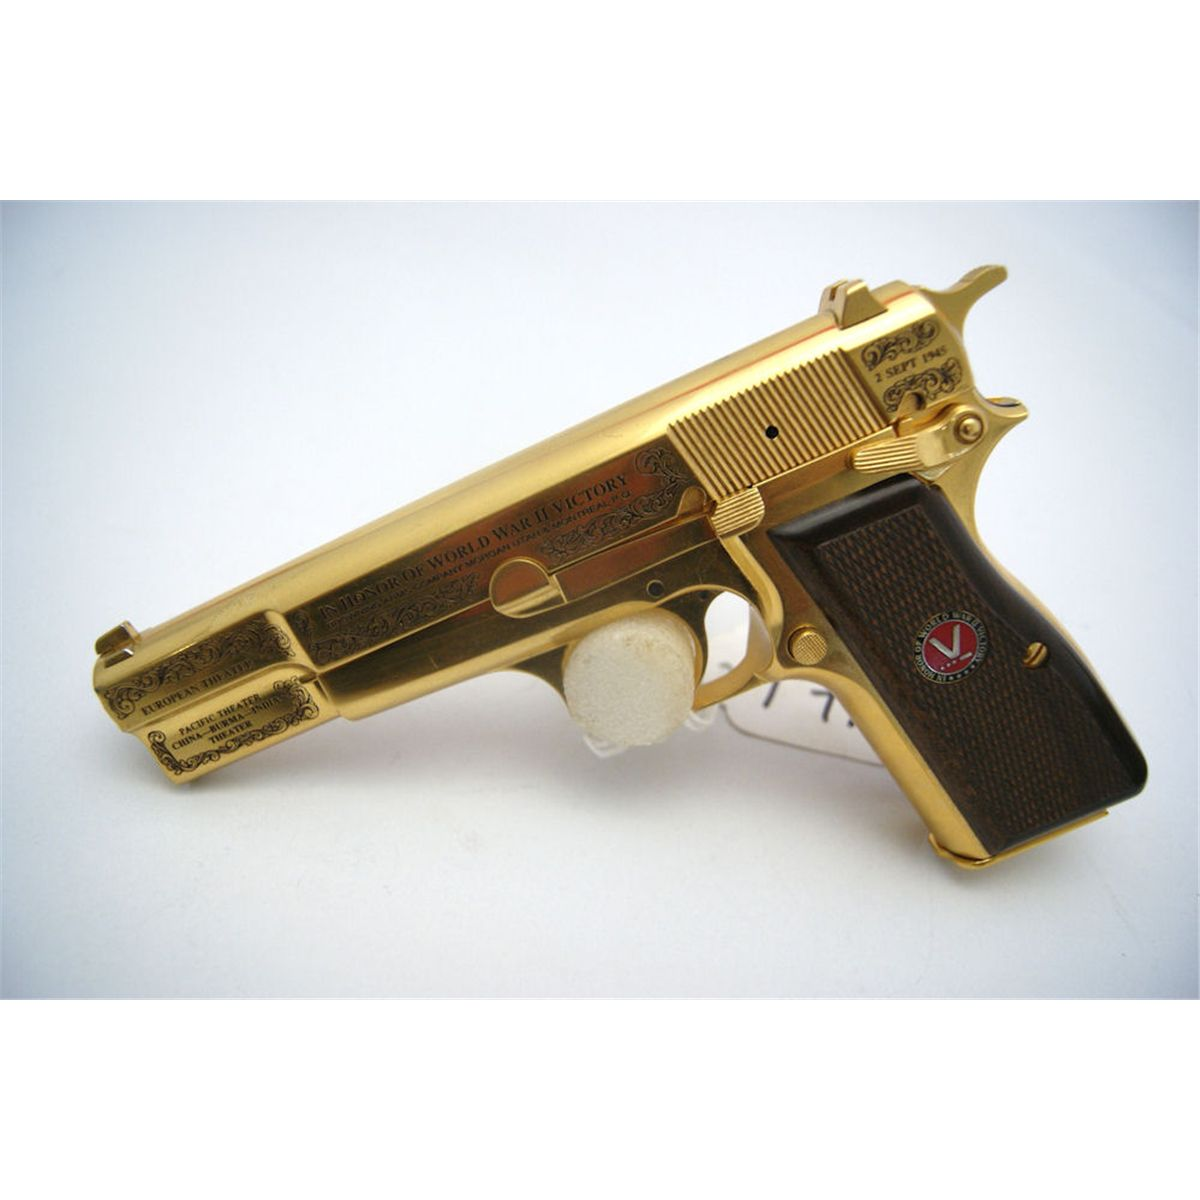 Gold, buyable, High power pistol, as a collection weapon!